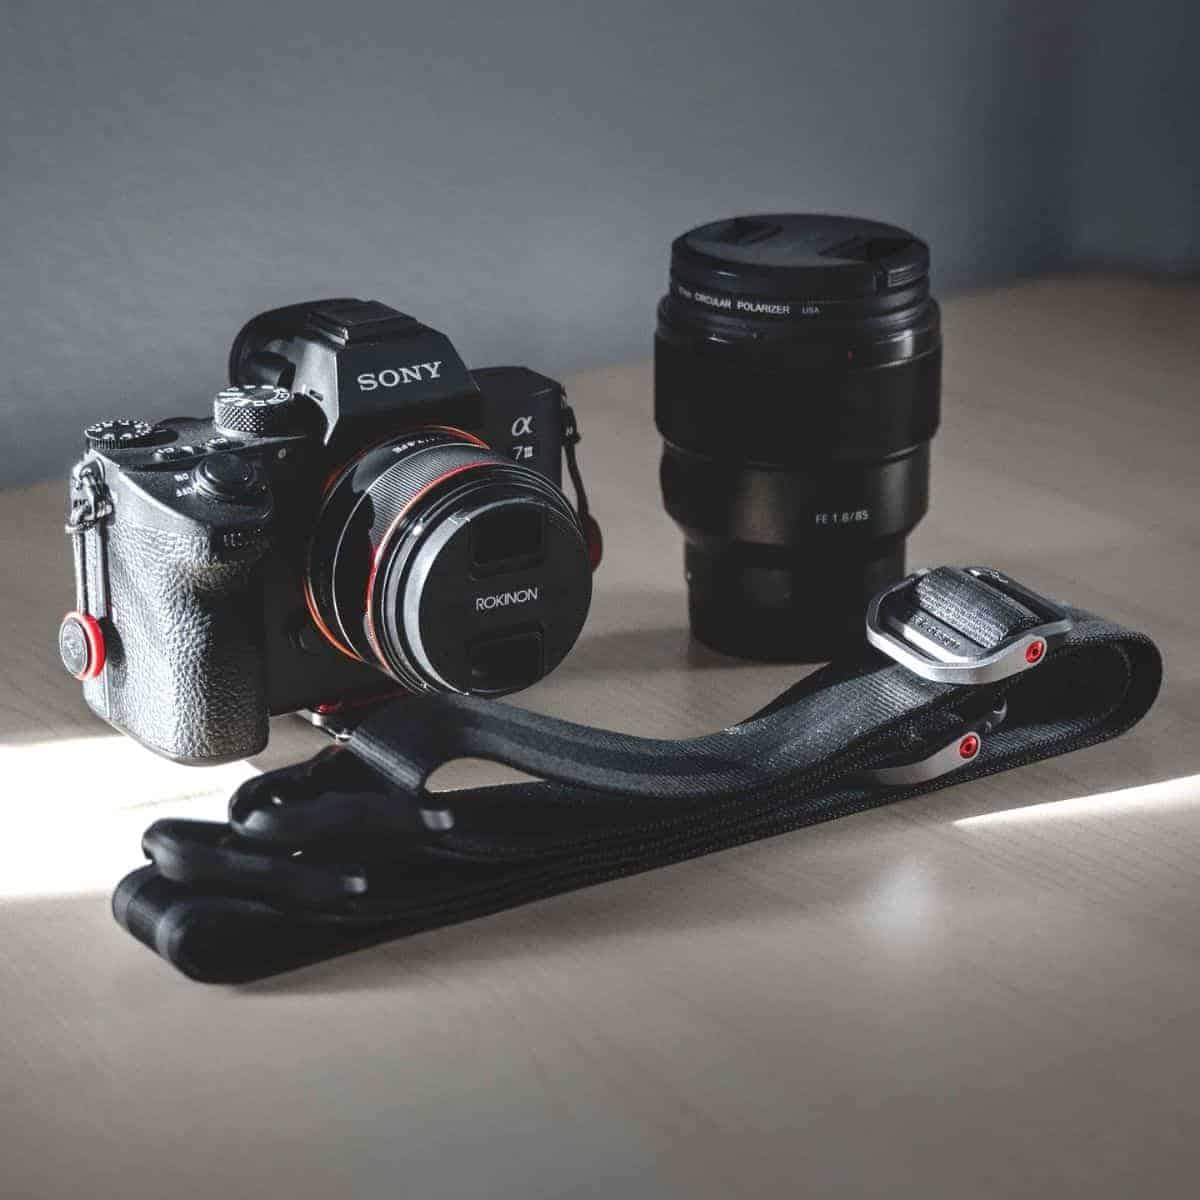 Camera, lens, and strap on a table.